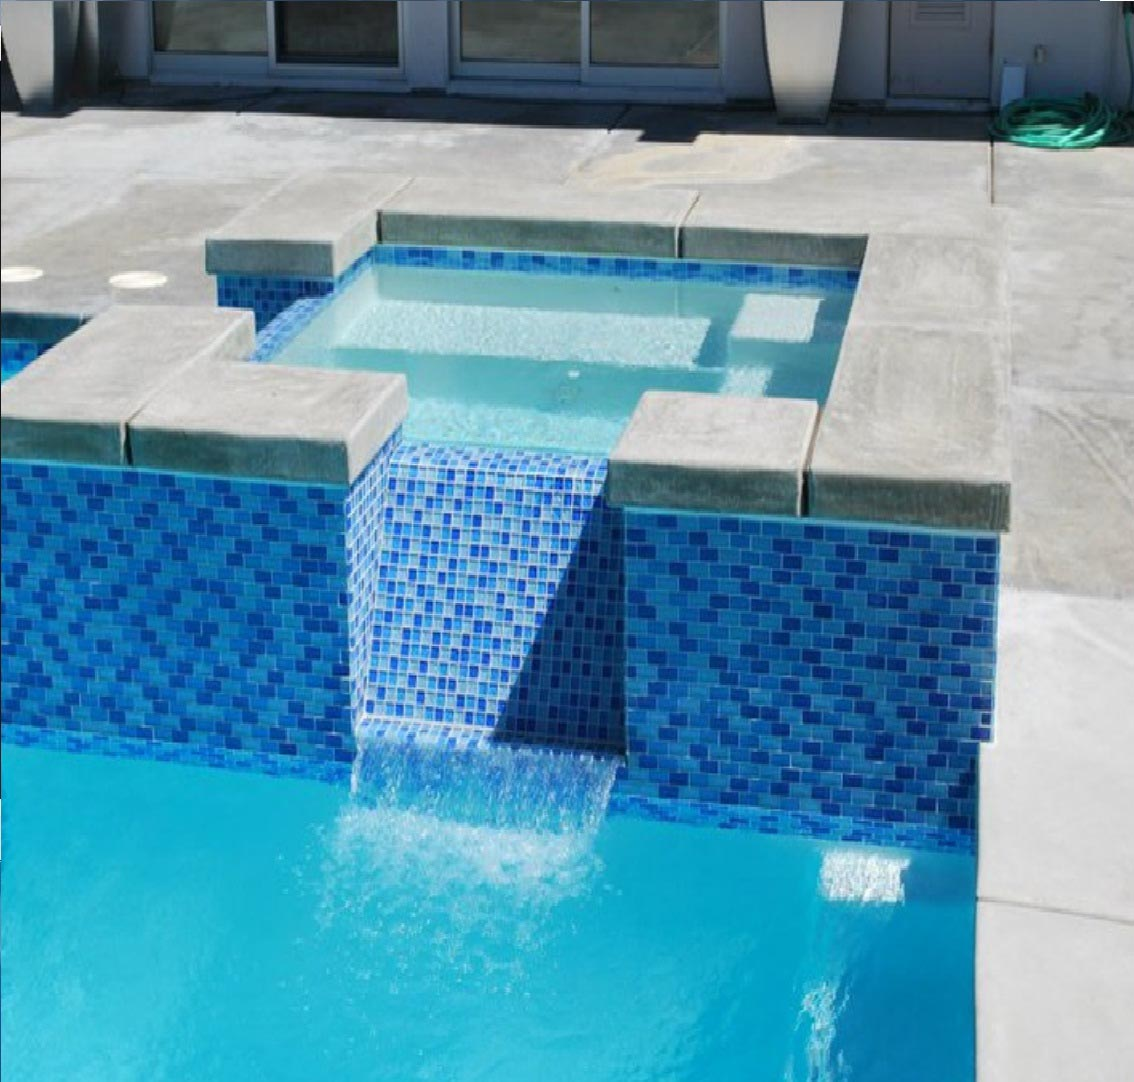 Swimming pool tile replacement backyard design ideas for Pool tile designs